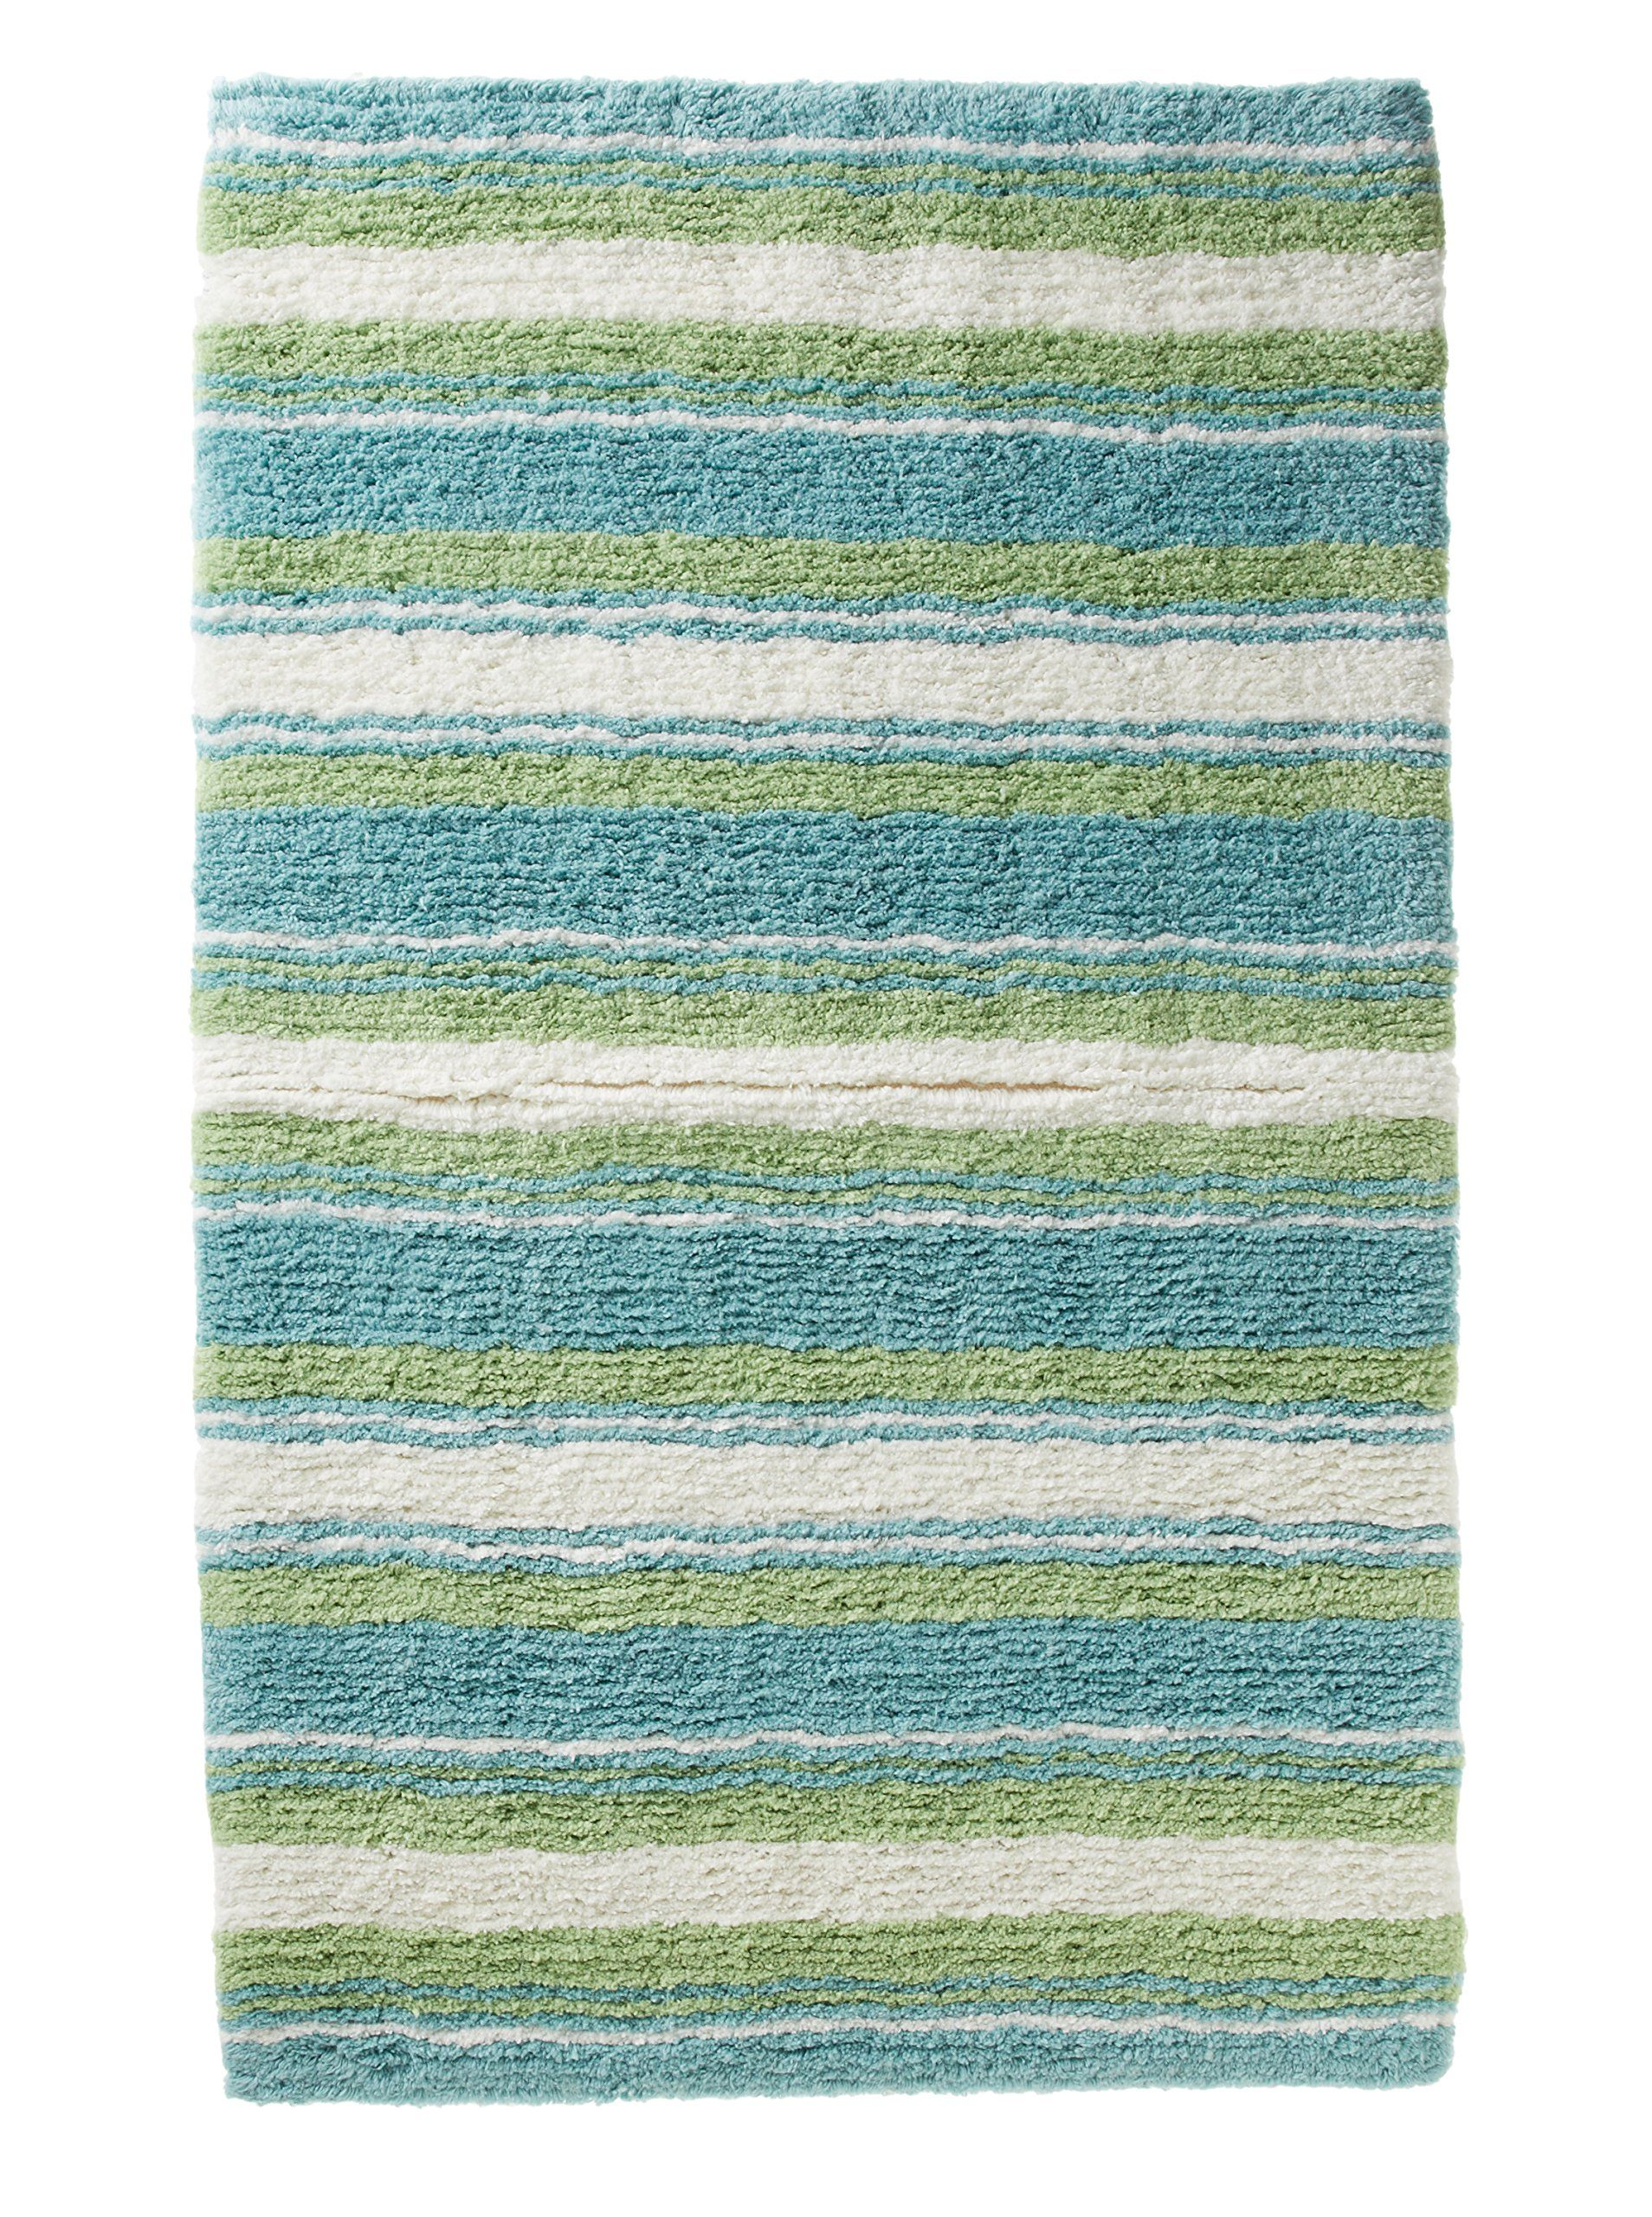 Aqua bathroom rugs - Ocean Bath Rug Tommy Bahama Ocean Stripe 24 99 5 70 Est Shipping From